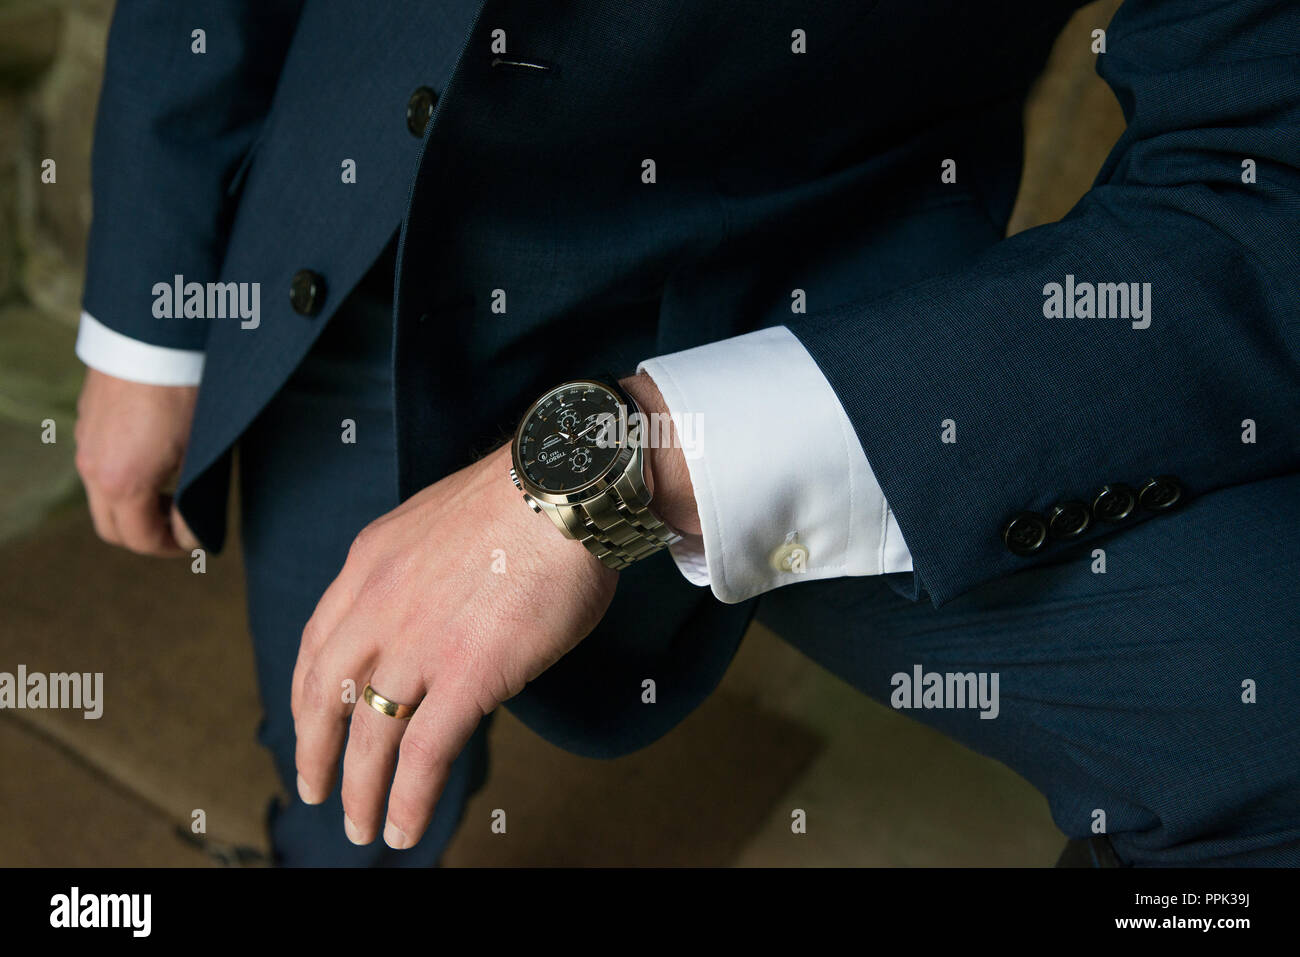 Young man's suited arm with shirt cuffs leaning across his raised knee to show his black faced Tissot watch and wedding ring. - Stock Image